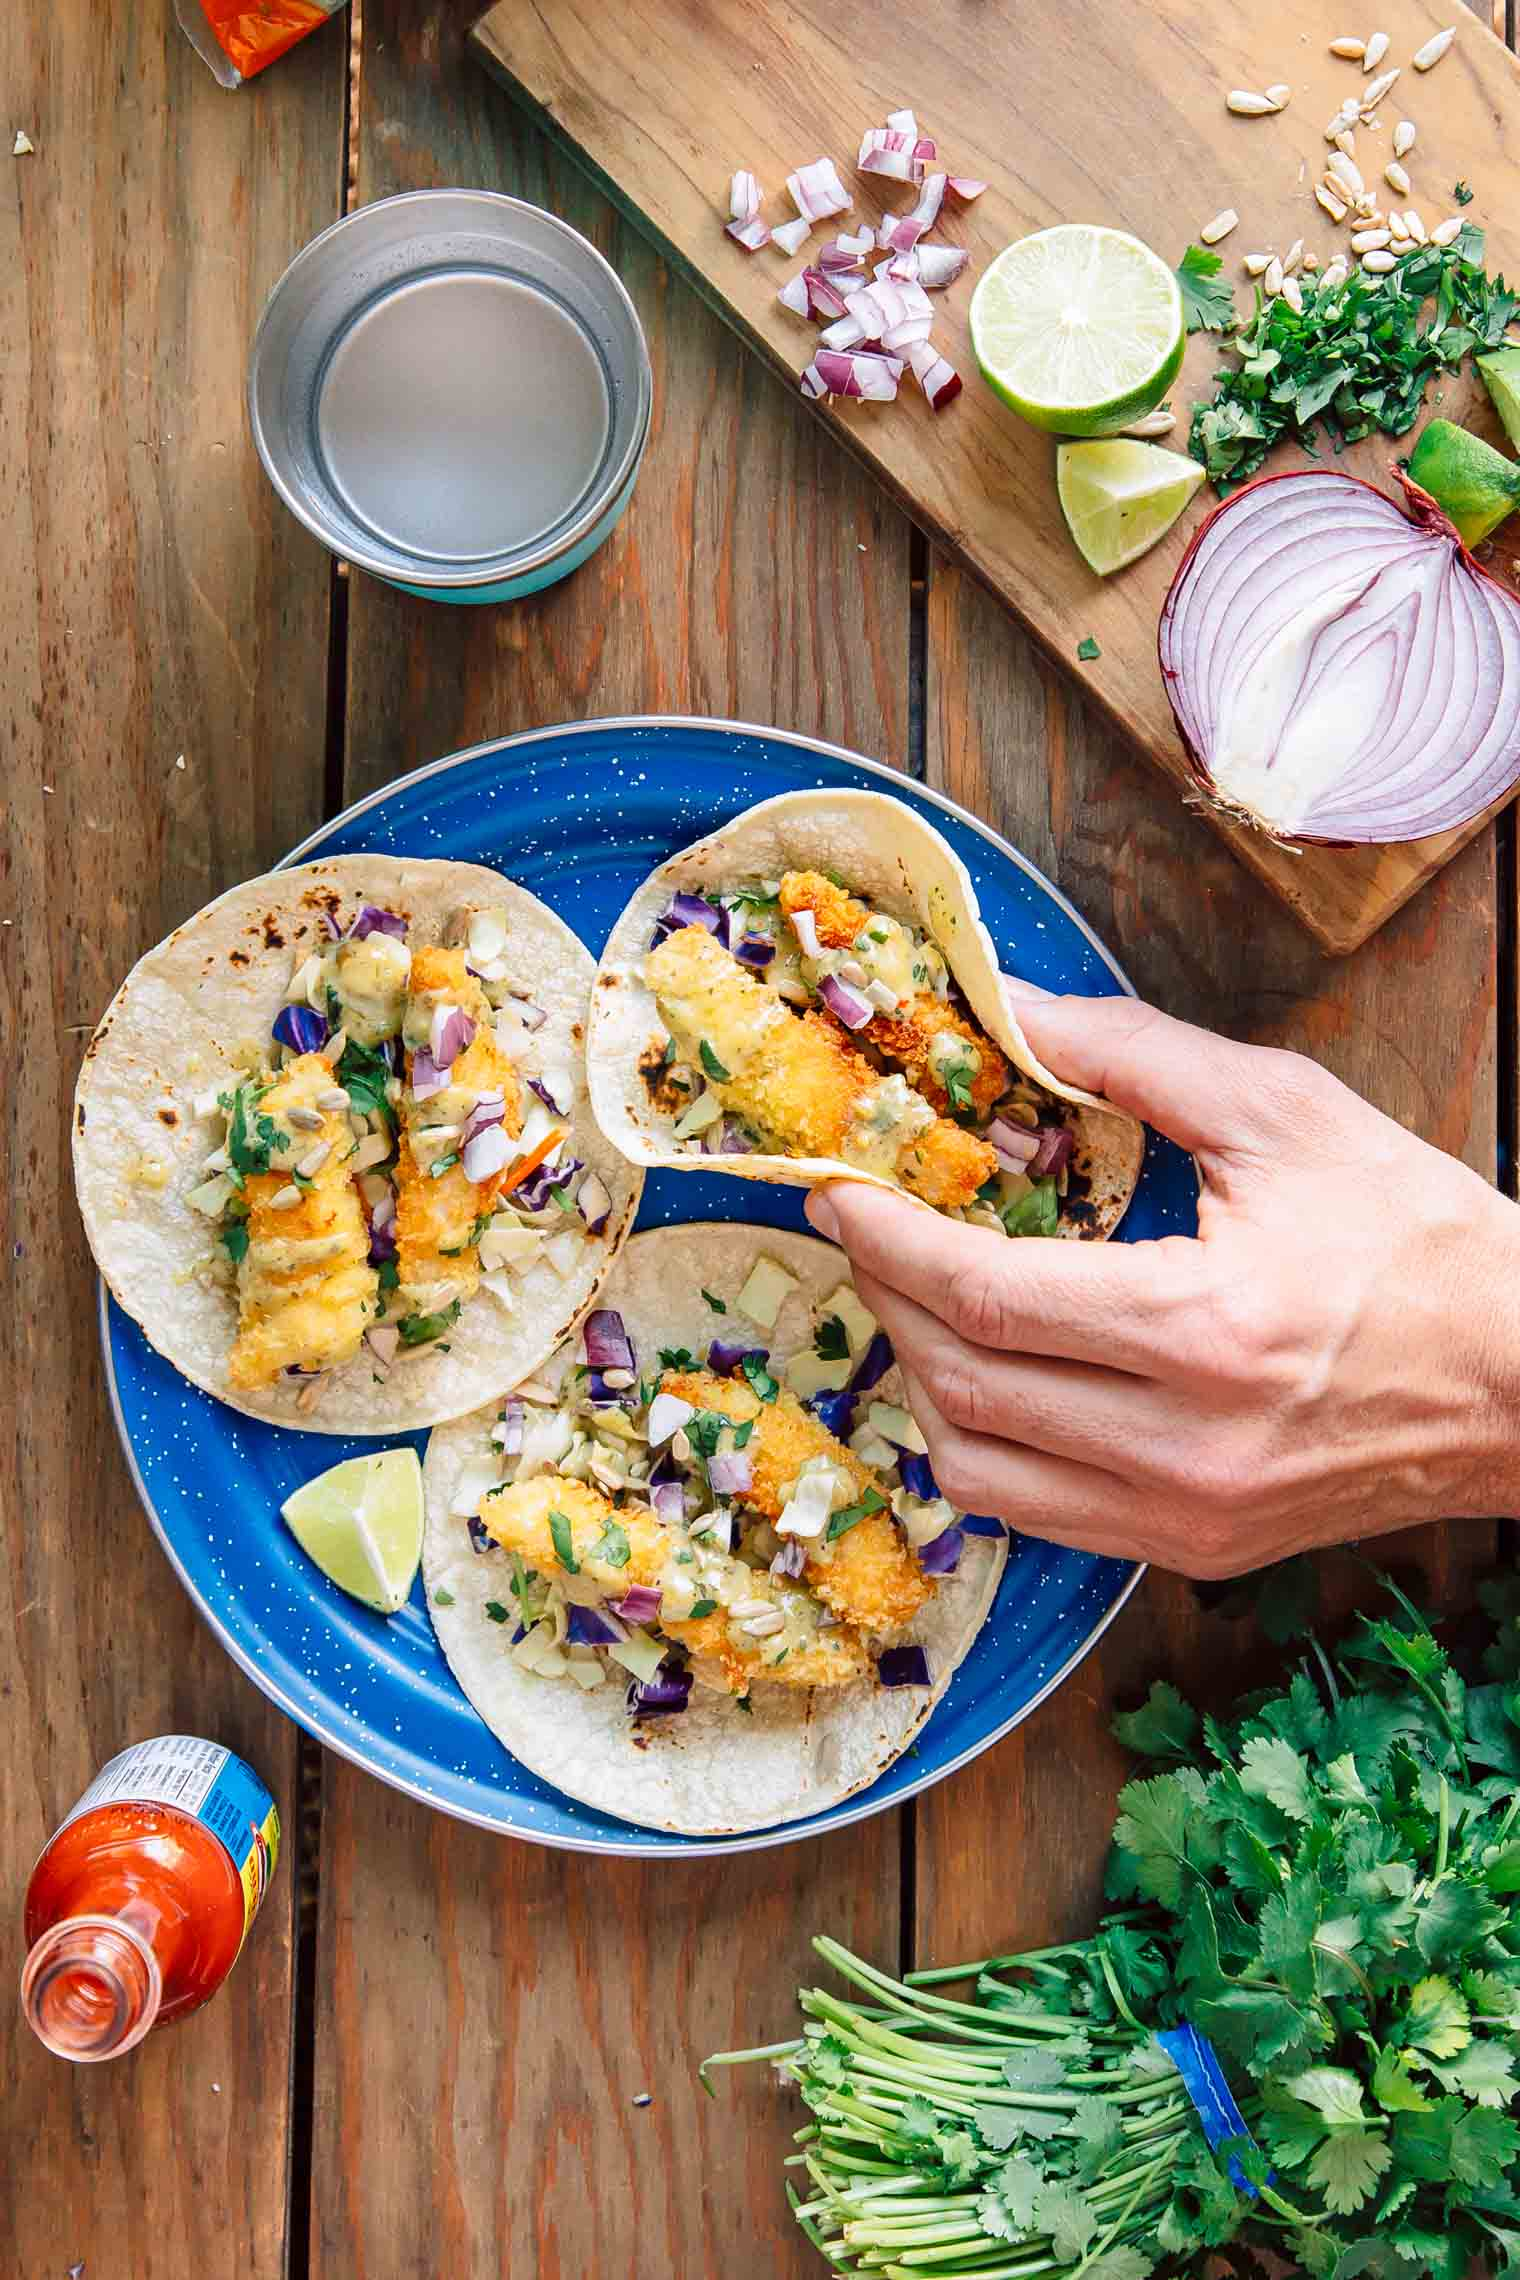 Crispy, crunchy Baja style fish tacos. An easy camping dinner idea!